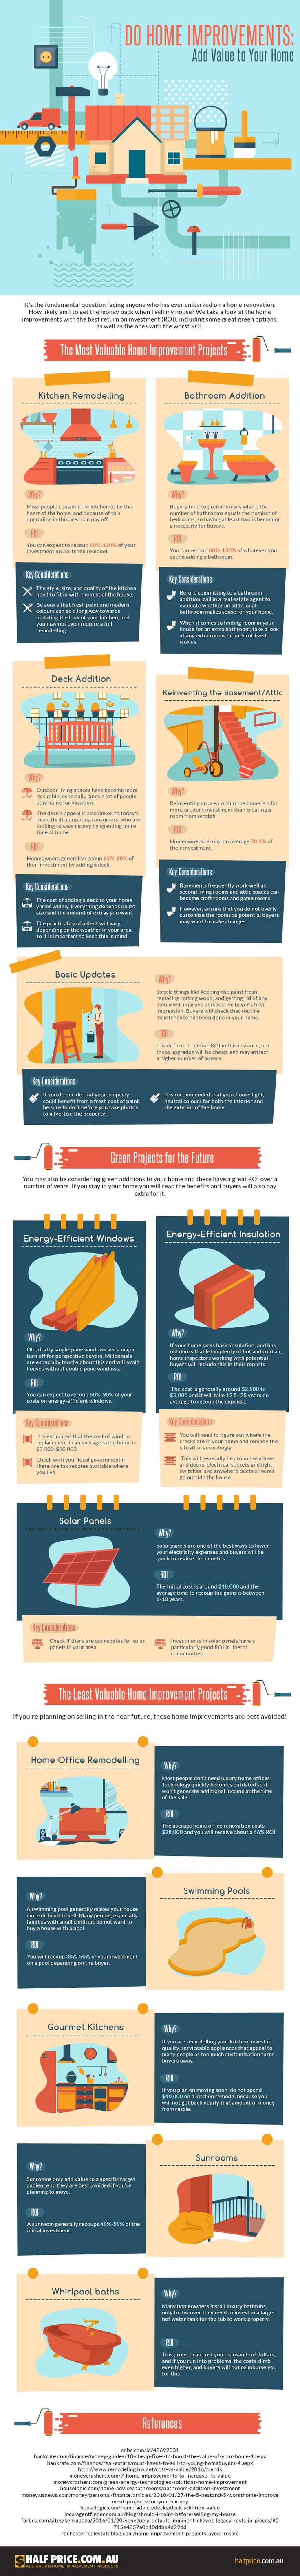 Check out Home Improvements: How to Add Value to Your Home [Infographic] at http://diyready.com/home-improvements-add-value-to-your-home-infographic/